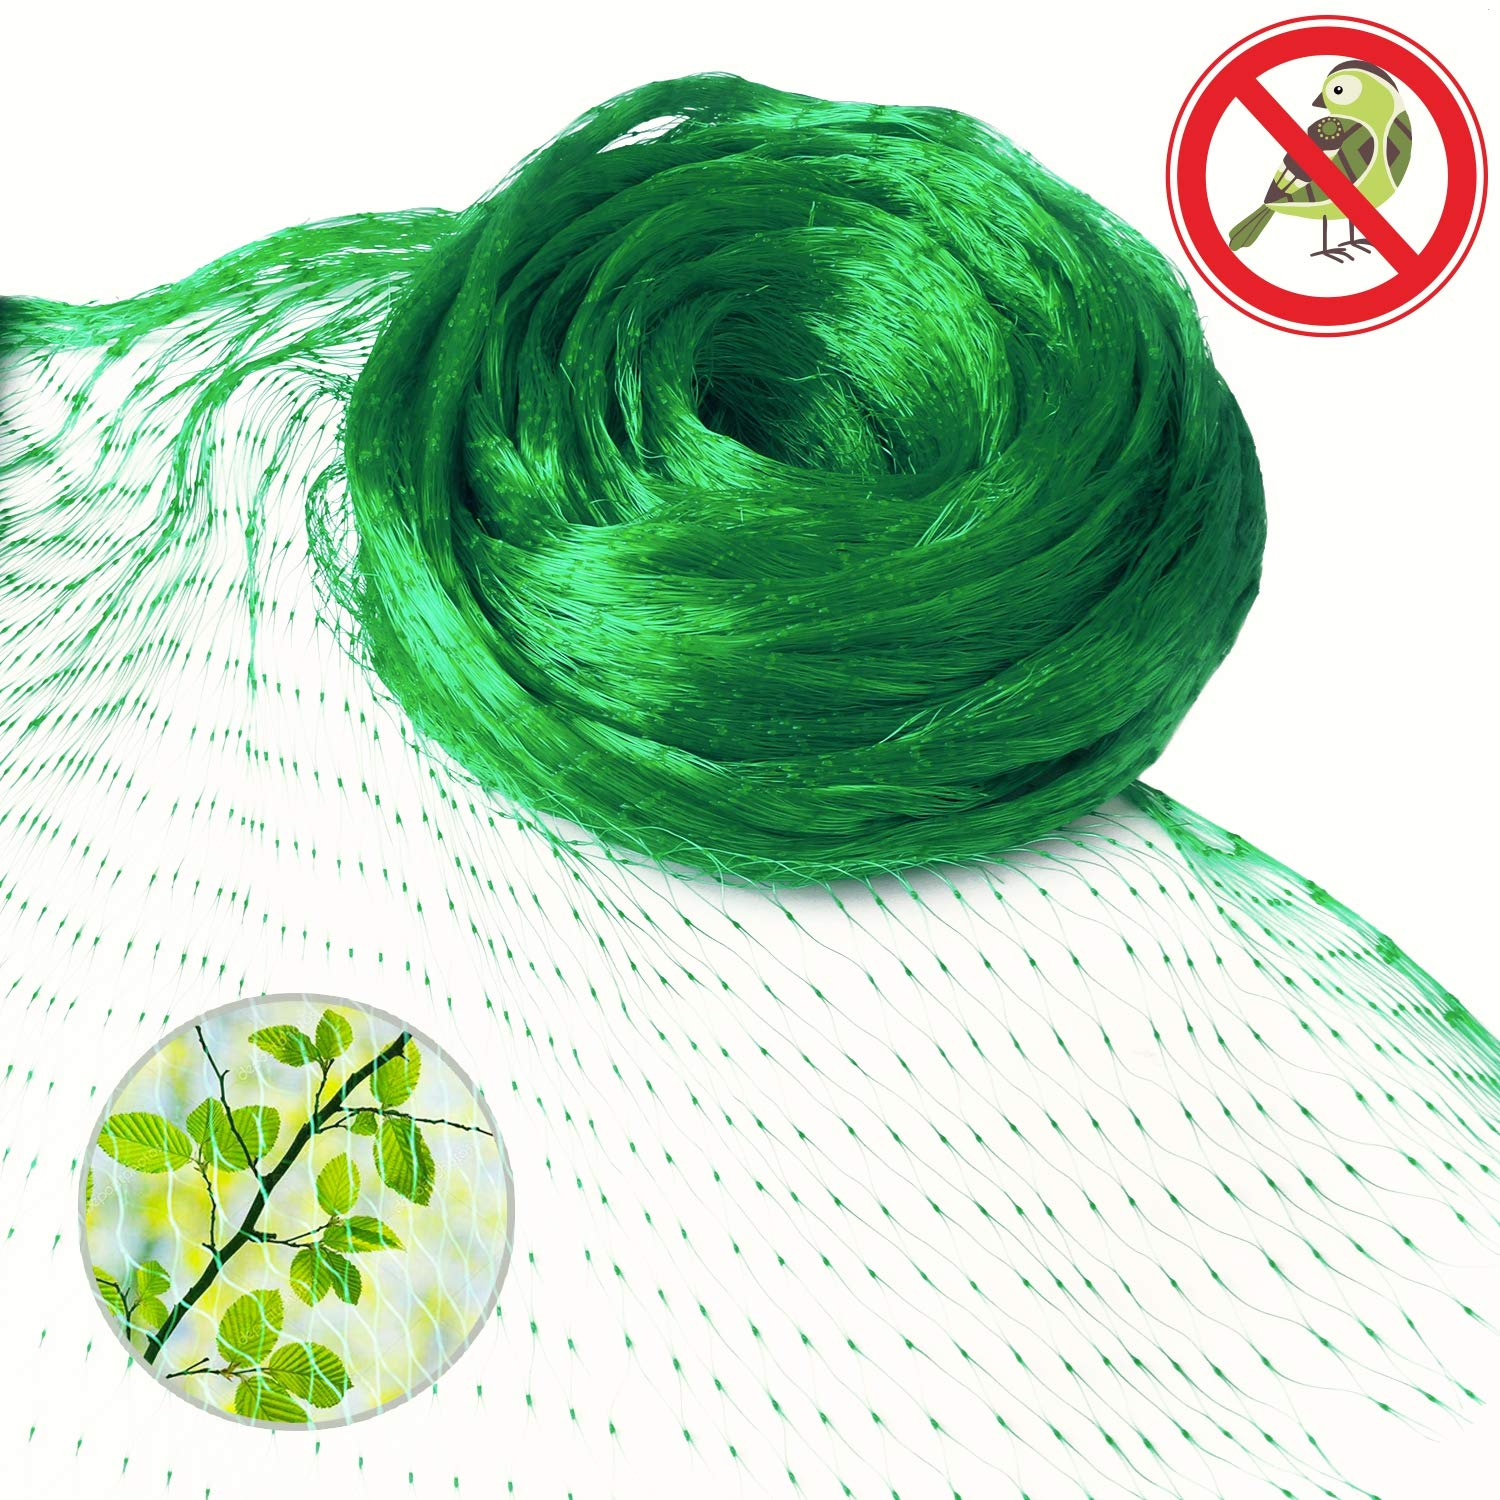 Anti-Bird Netting 13 Ft x 33 Ft Garden Plant Net Protect Fruits berry and Vegetable Rodents Against Birds New 0.6'' Square Mesh Size - Green